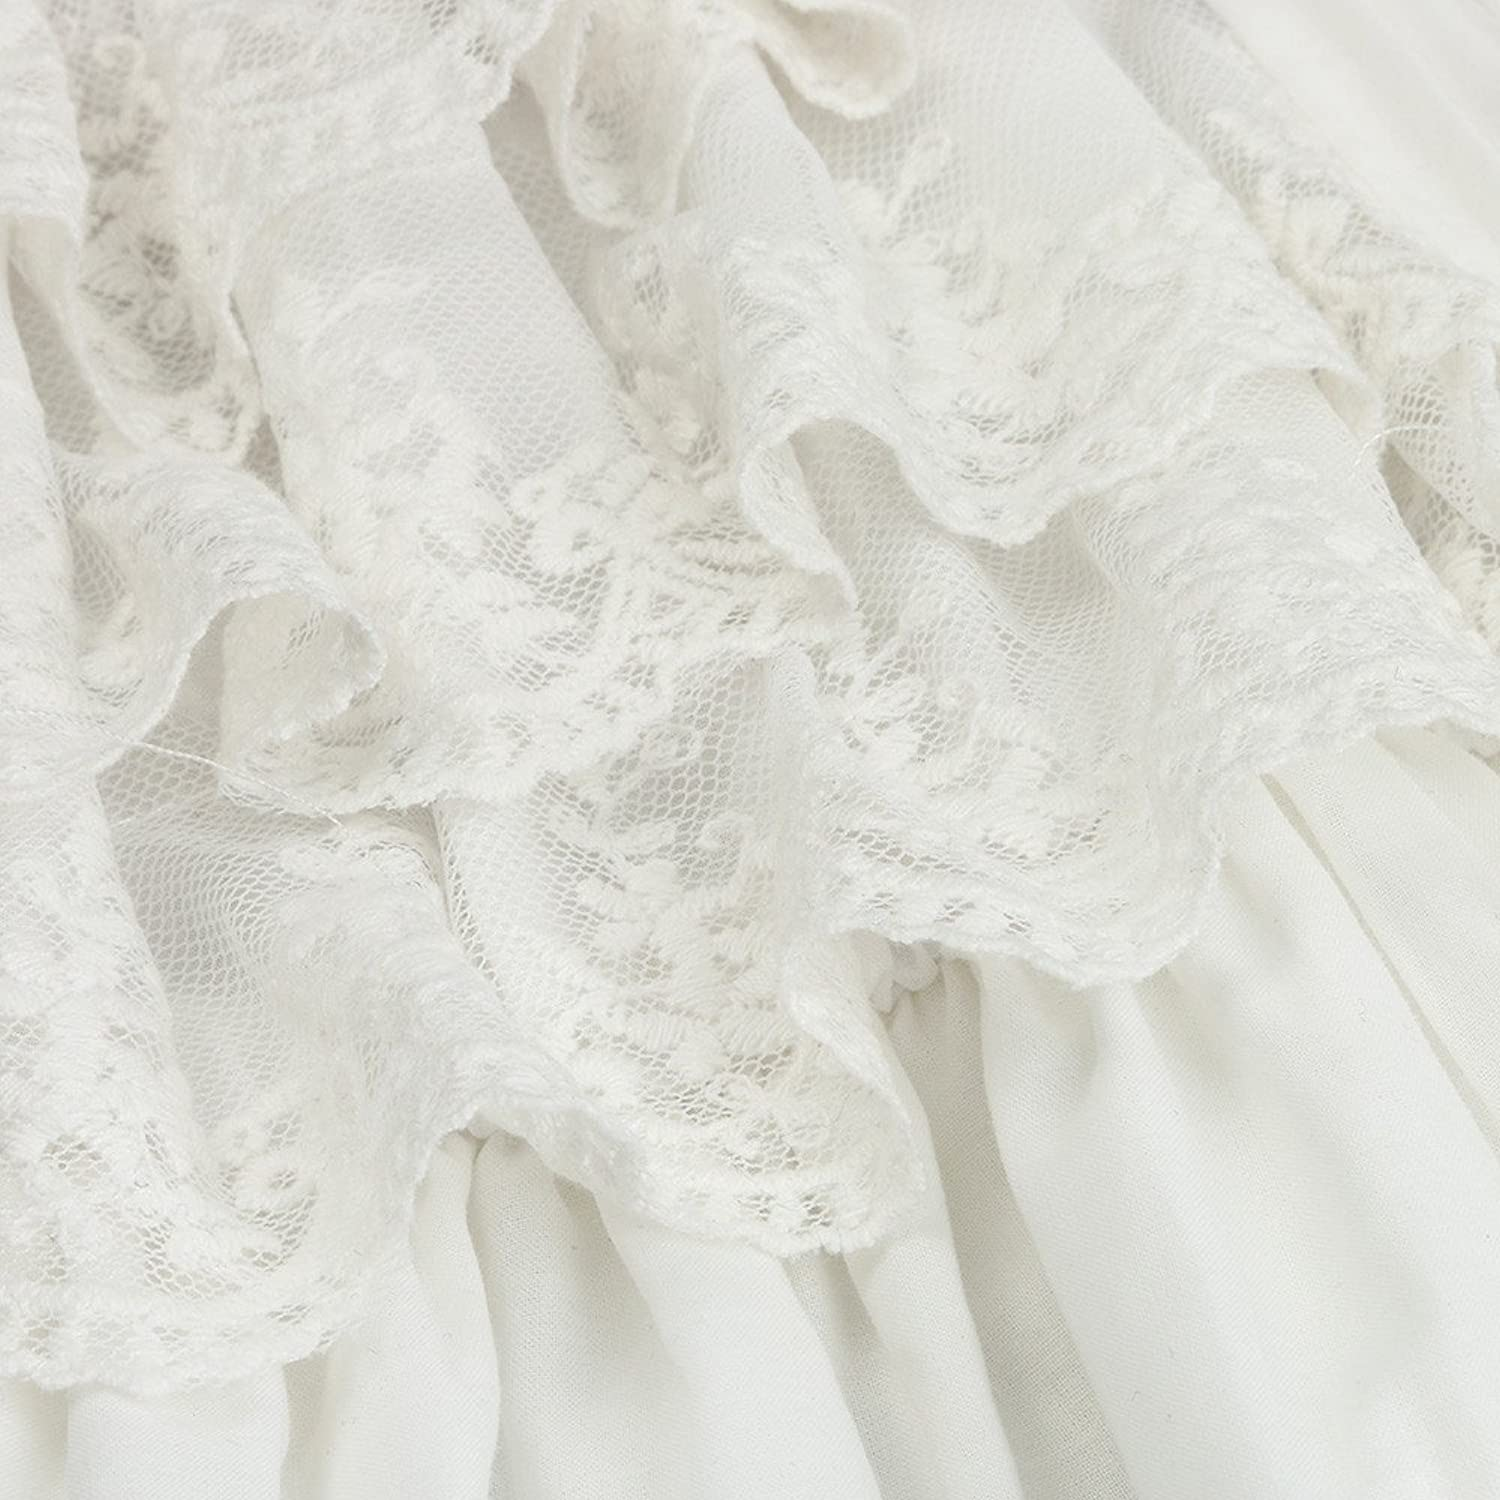 Amazon.com: HotMoon Baby Girls Off Shoulder O-Neck Short Sleeve Lace Princess A-Line Party Wedding Pageant Dress: Clothing